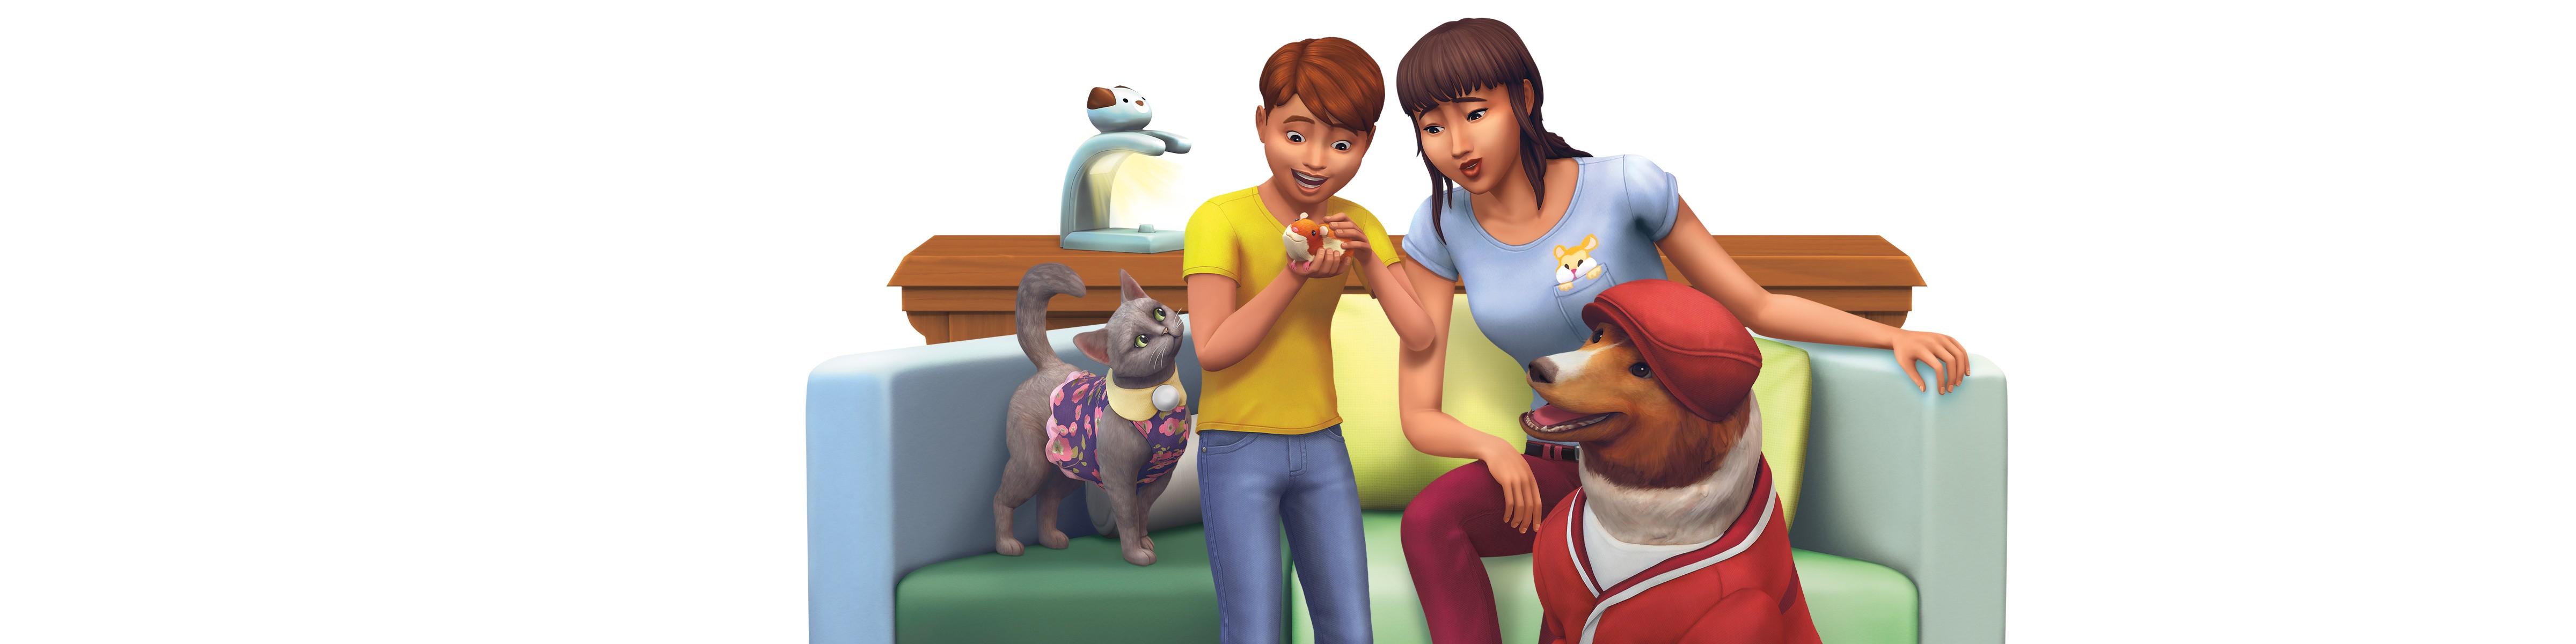 the sims 4 my first pet stuff download ita